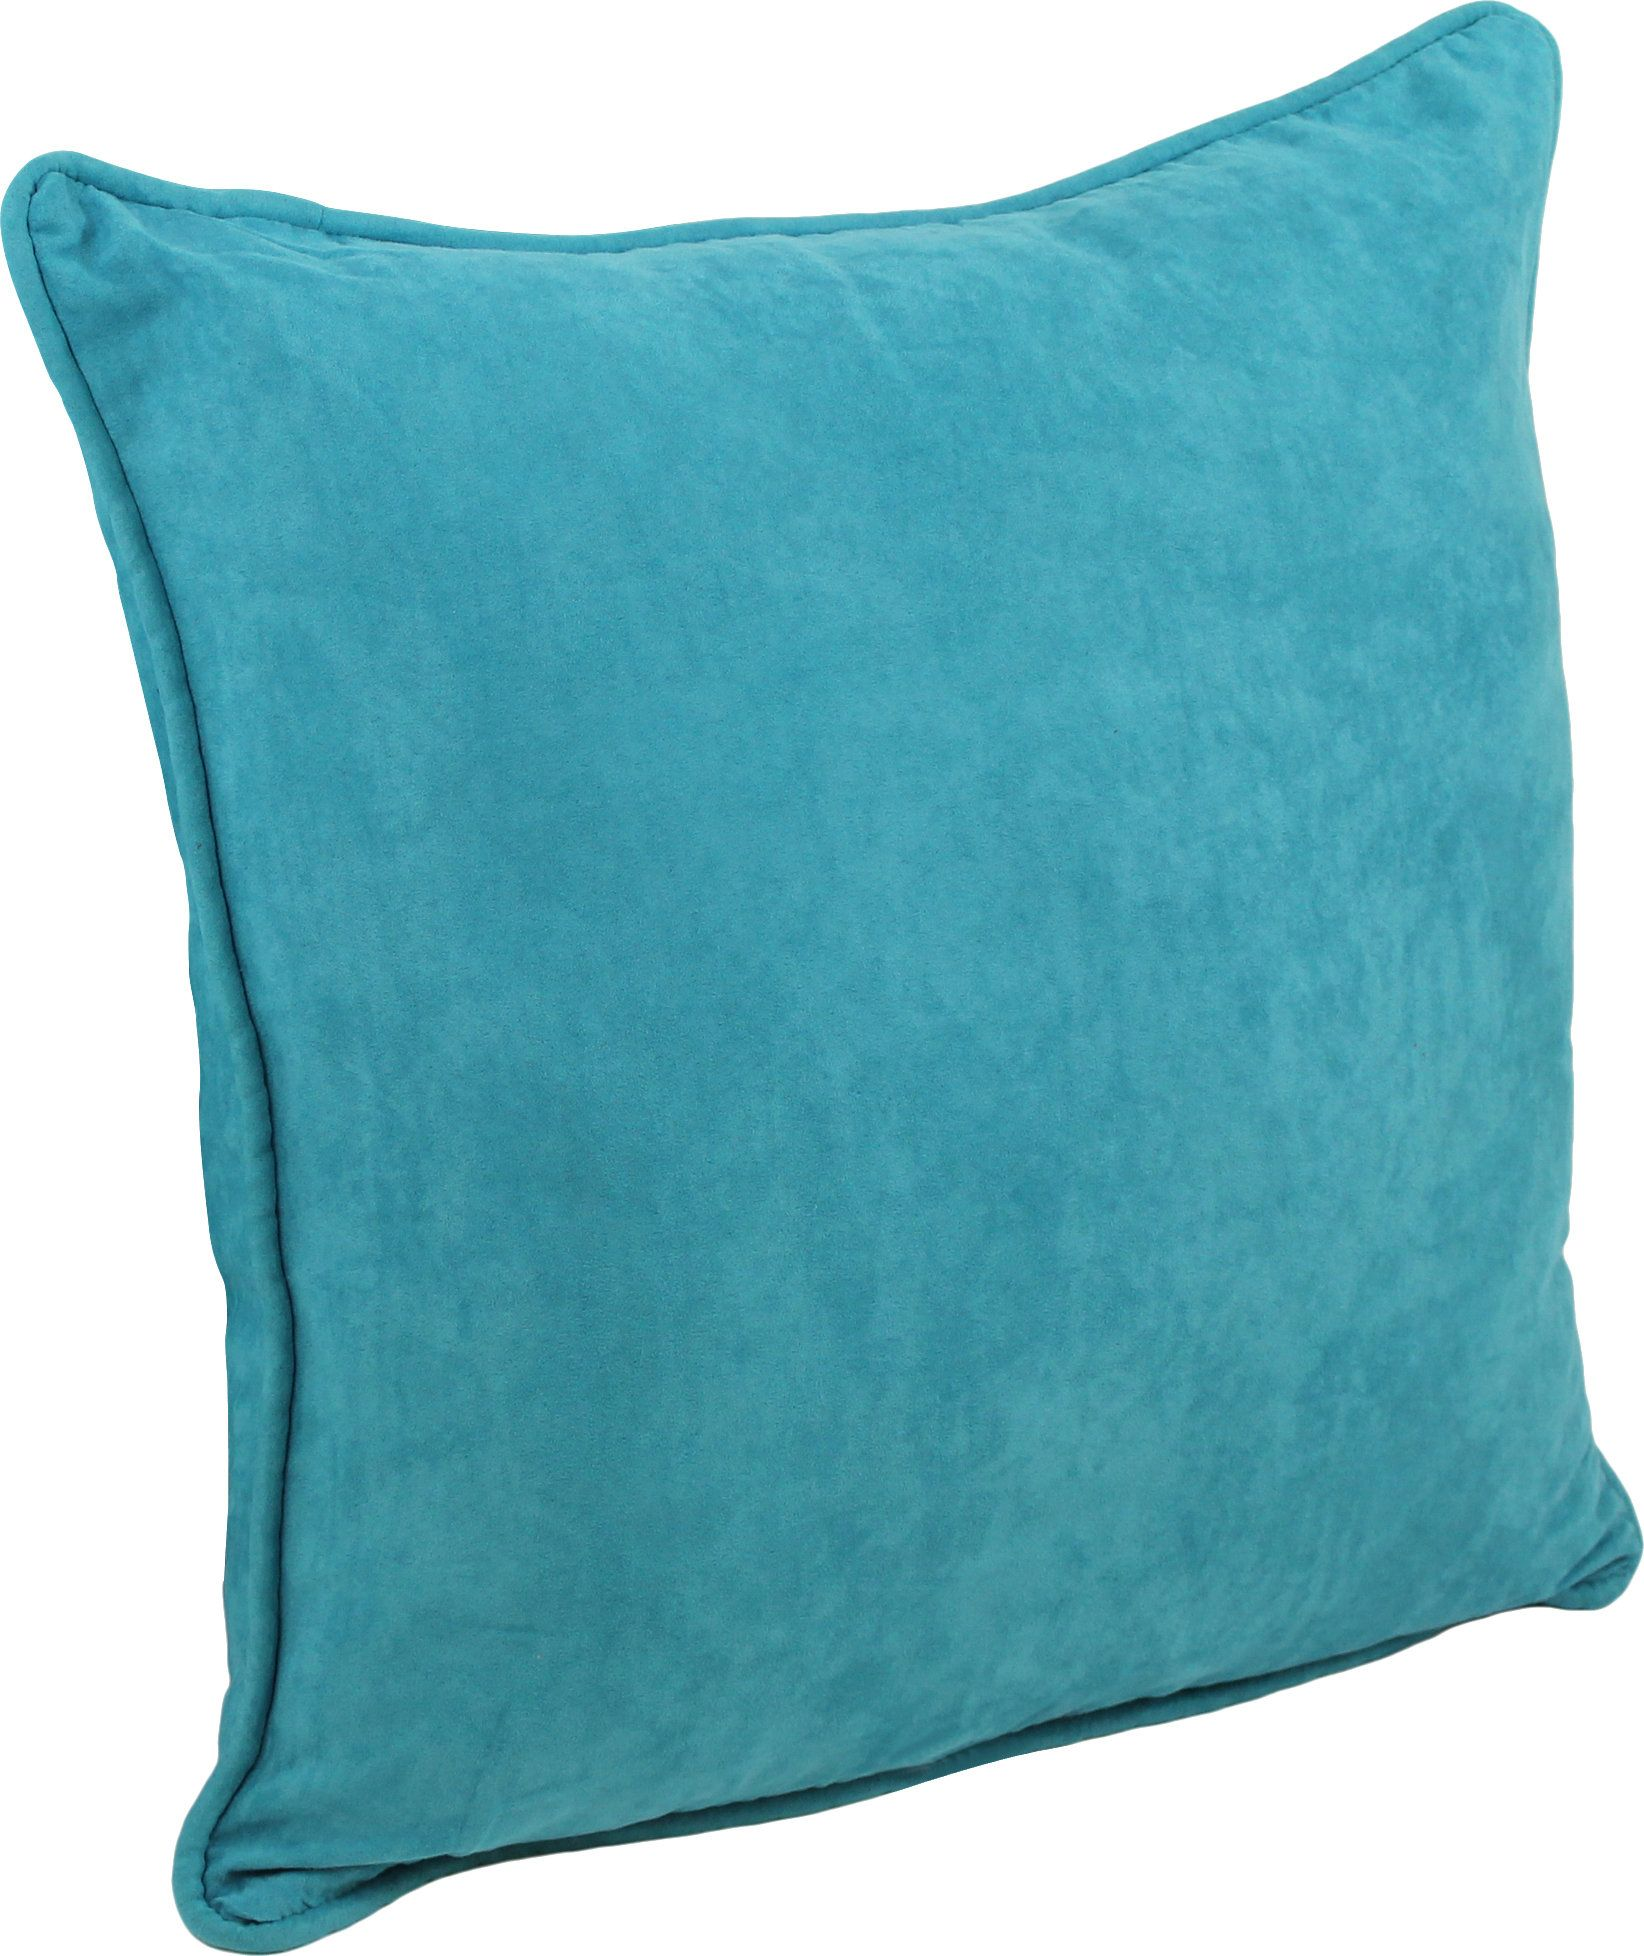 Boulware floor pillow floor pillows pillows and products